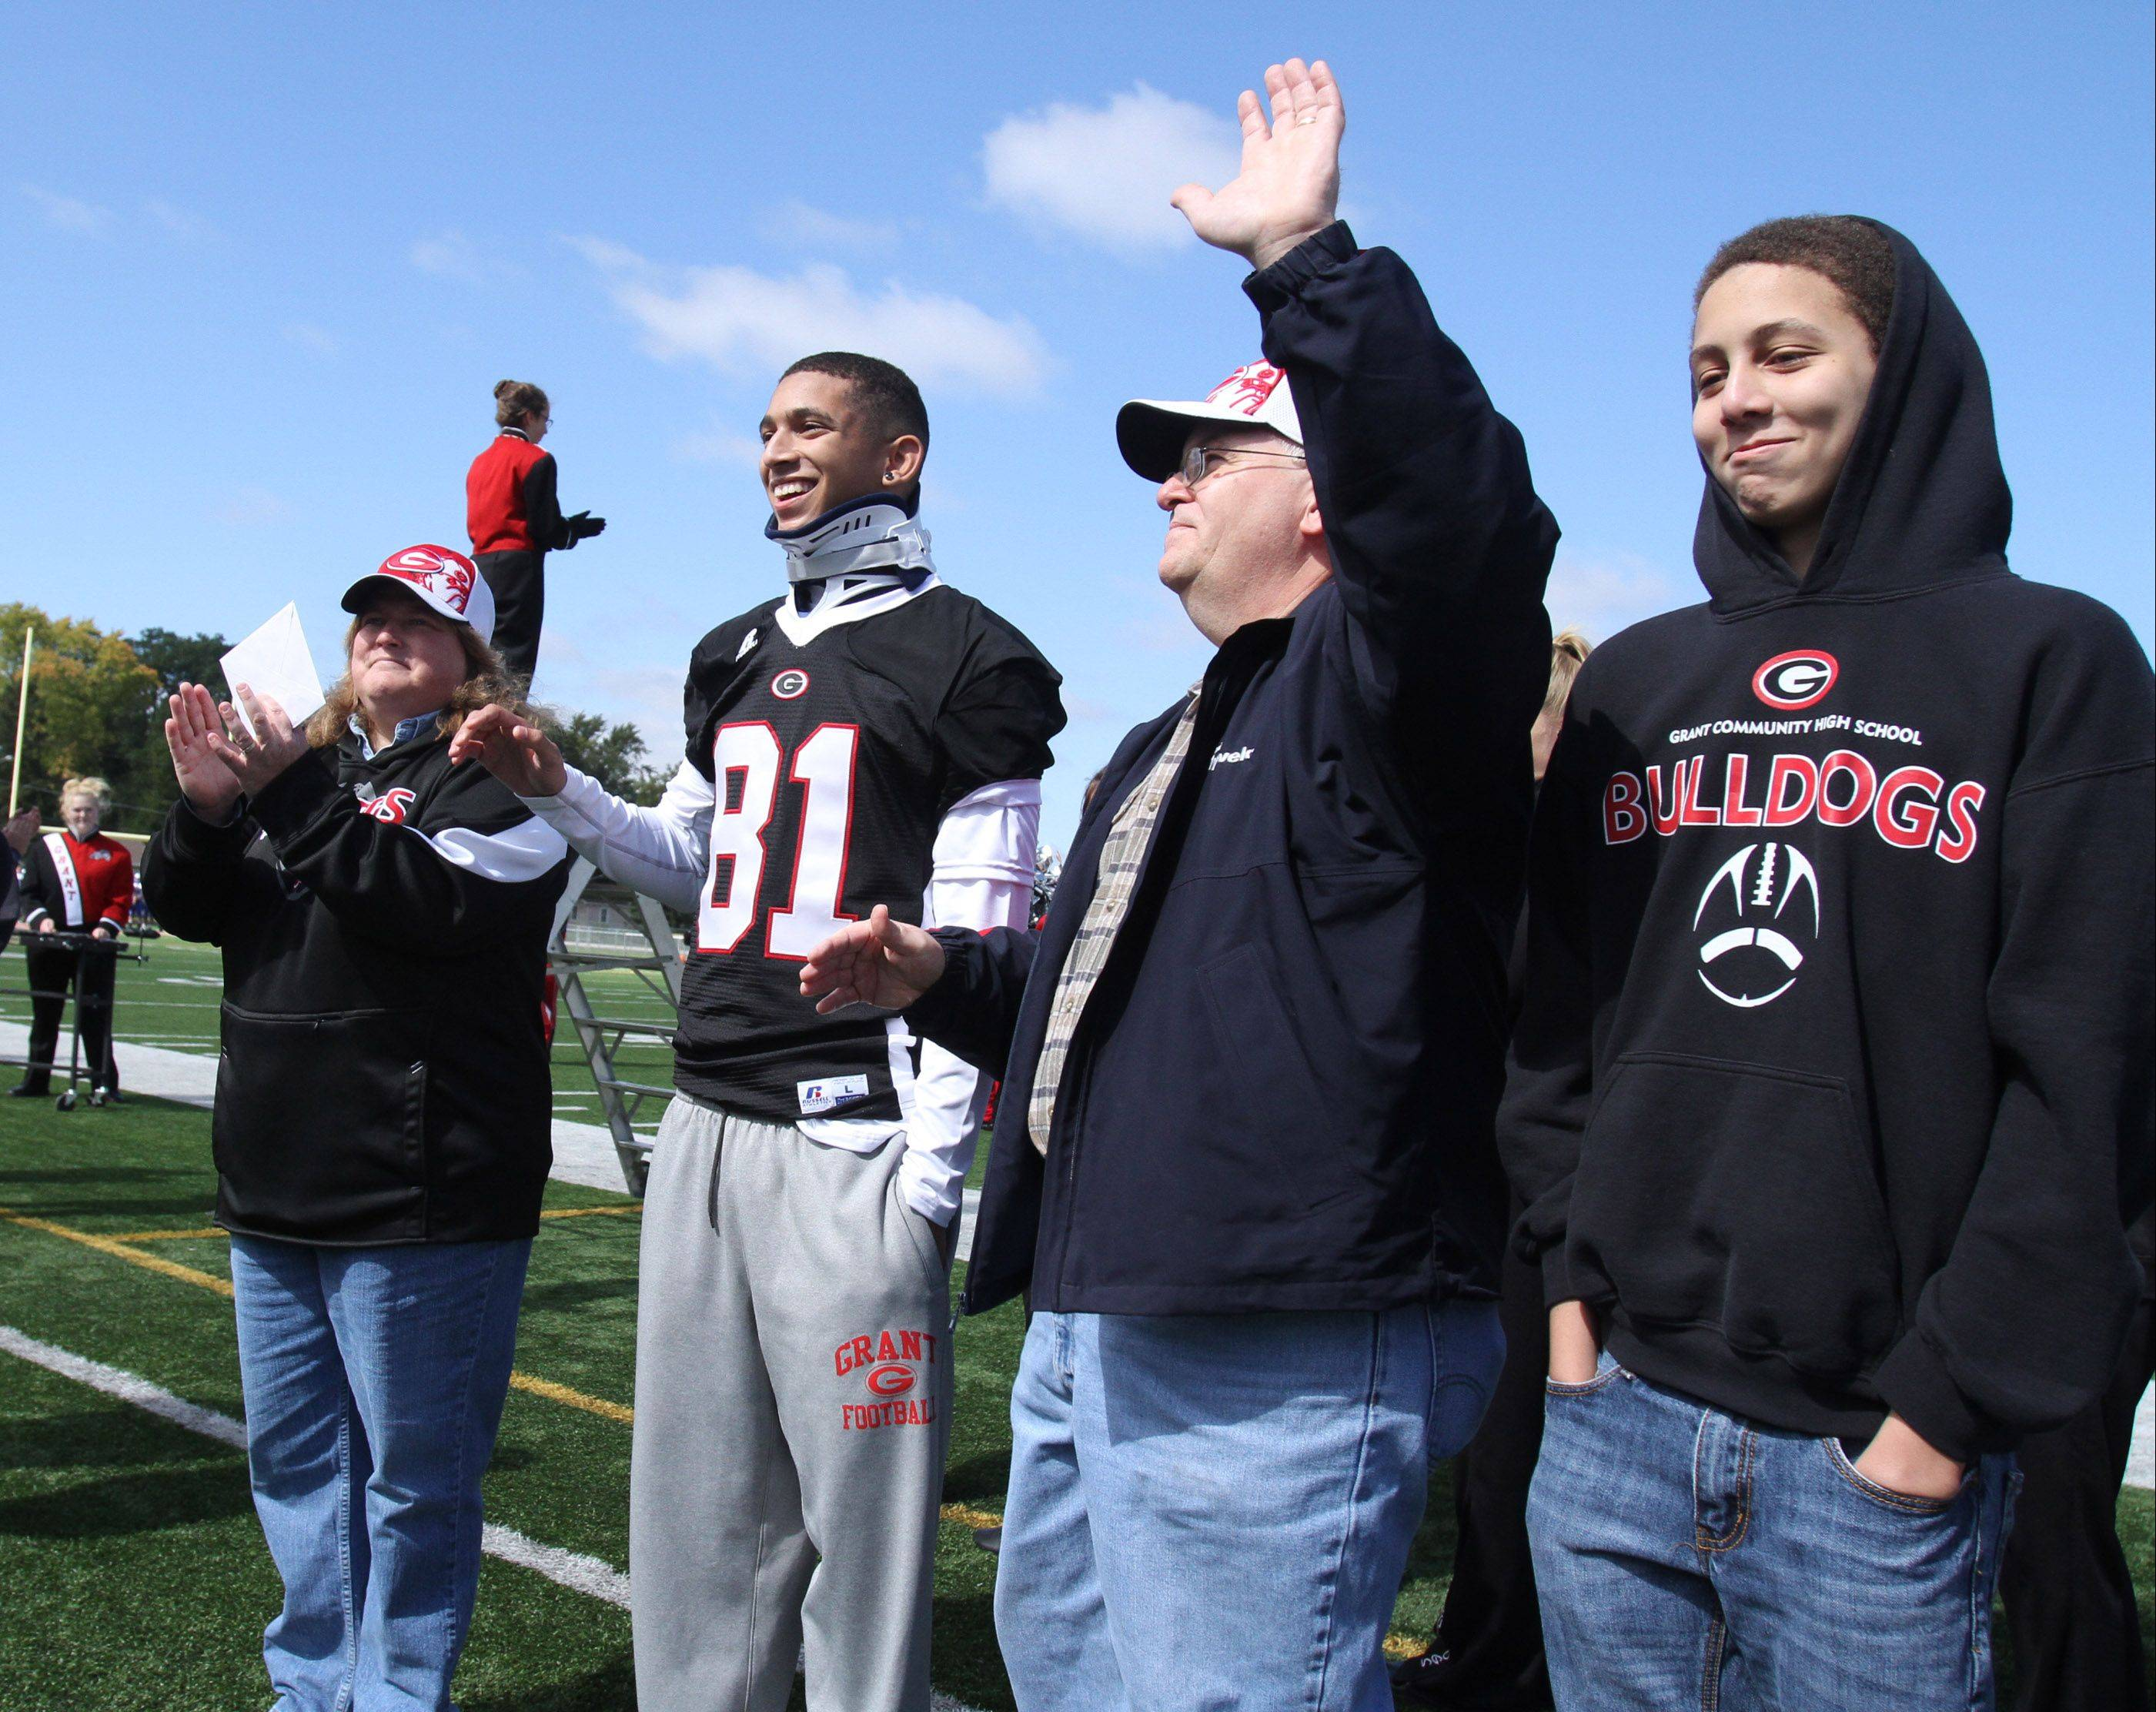 Ray Gomoll waves to Grant fans after his son, injured cornerback Chris Gomoll (81), received a check before the school's homecoming game against Vernon Hills on Saturday. At left is Chris's mother, Angie, and brother Ethan, 13, right.